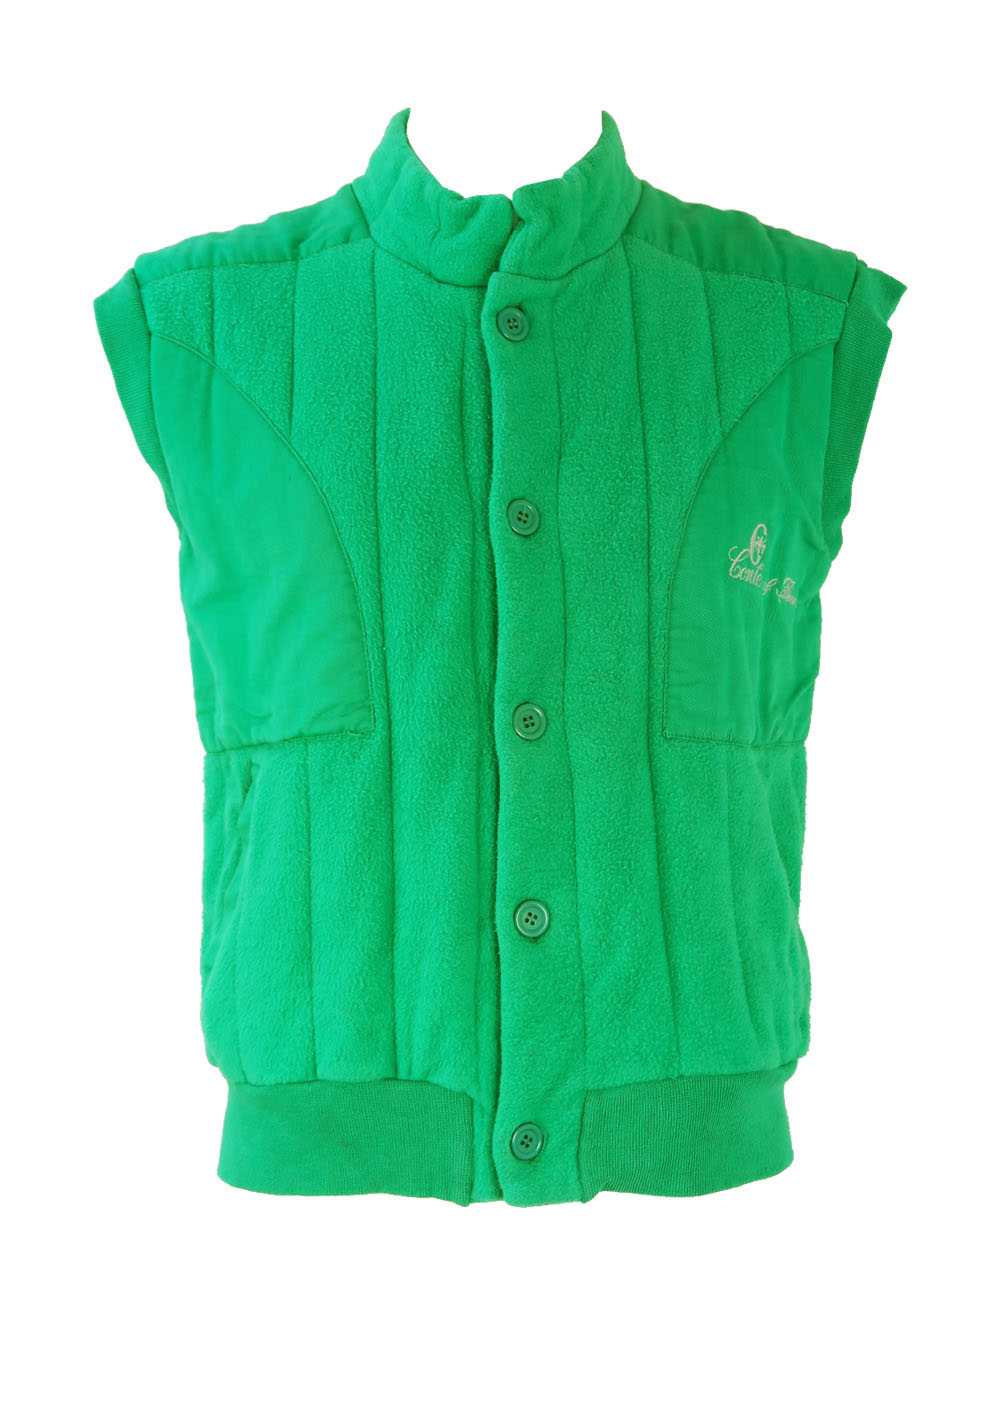 836d8332a6117 Conte of Florence Green Ribbed Gilet – S M